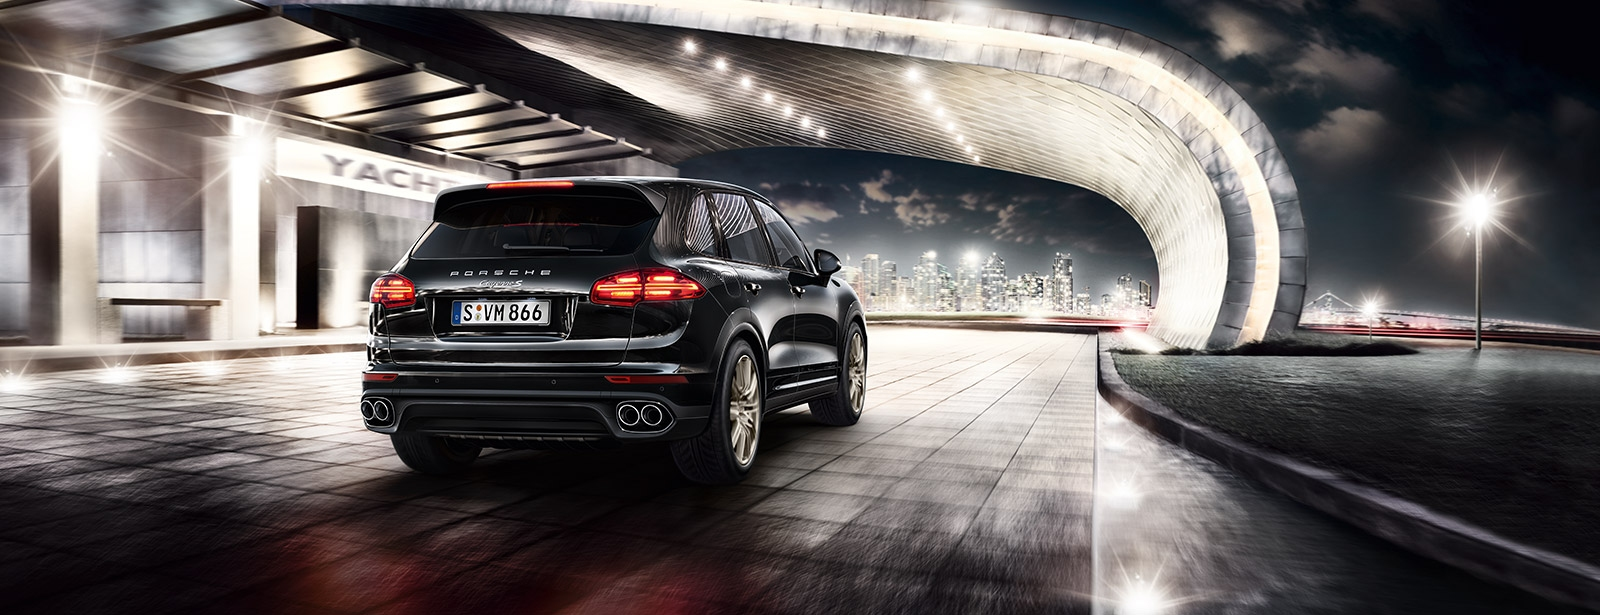 Porsche - Cayenne S Diesel Platinum Edition - Accomplished performance.